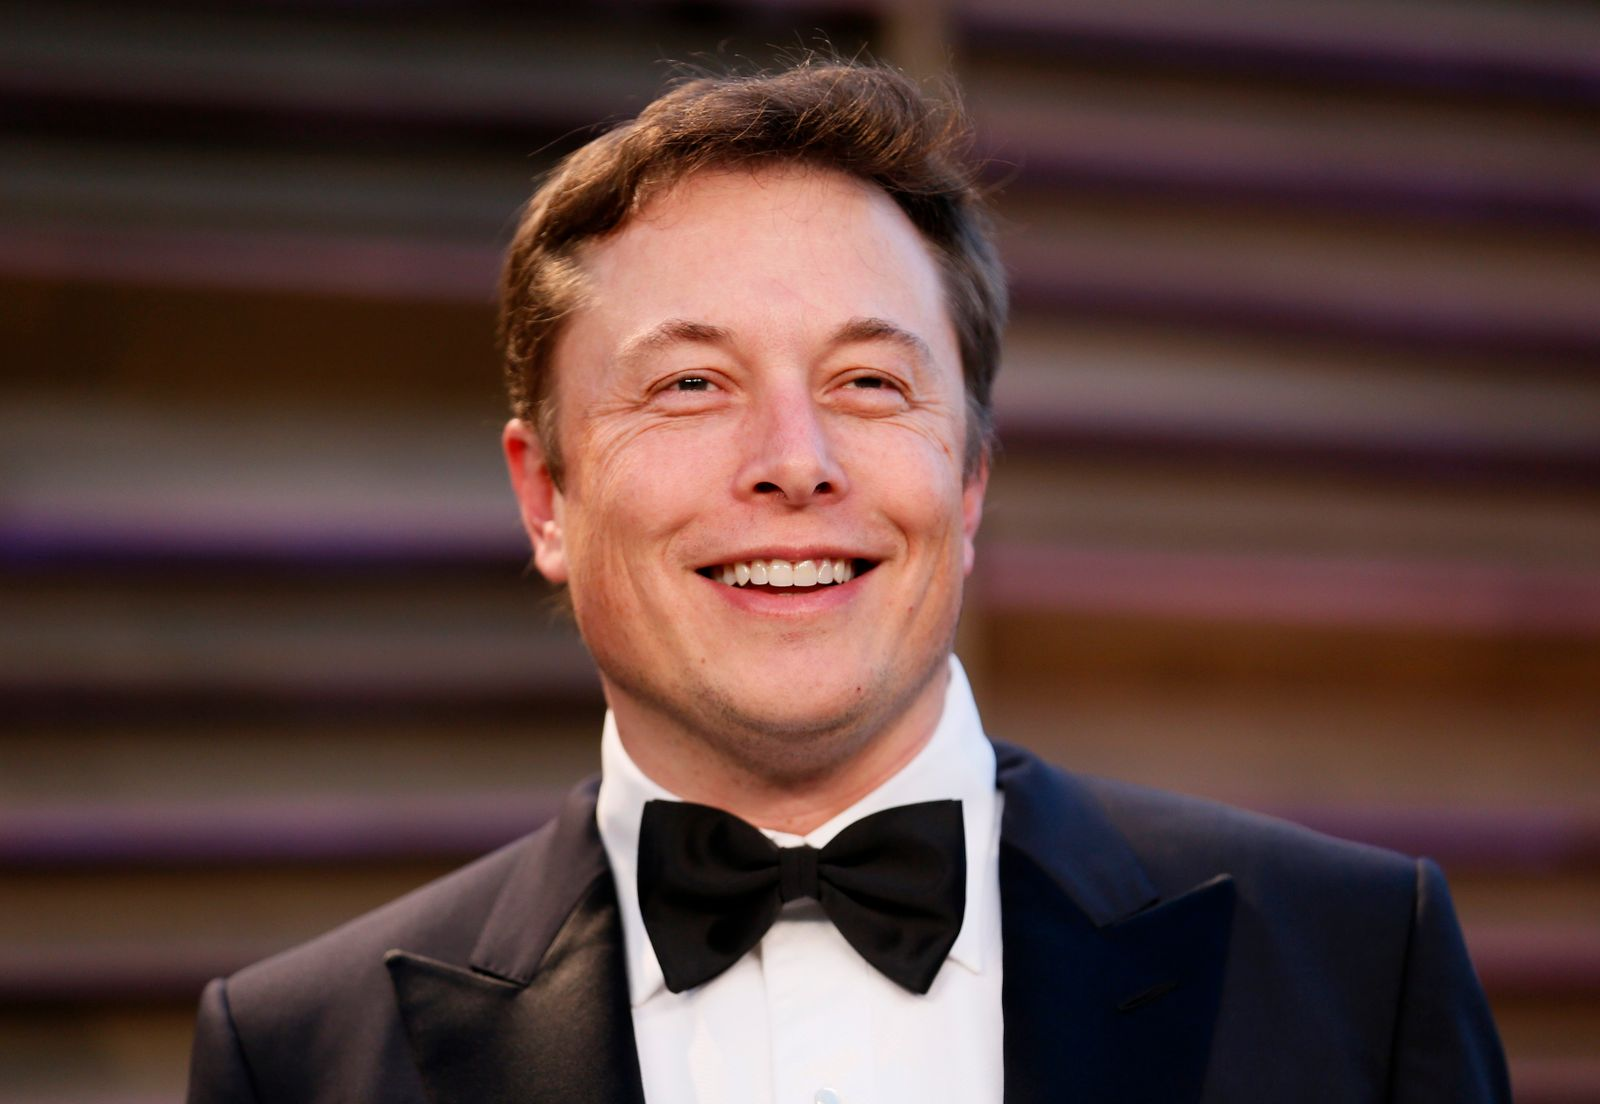 Chief Executive of SpaceX and Tesla Motors Elon Musk arrives at the 2014 Vanity Fair Oscars Party in West Hollywood